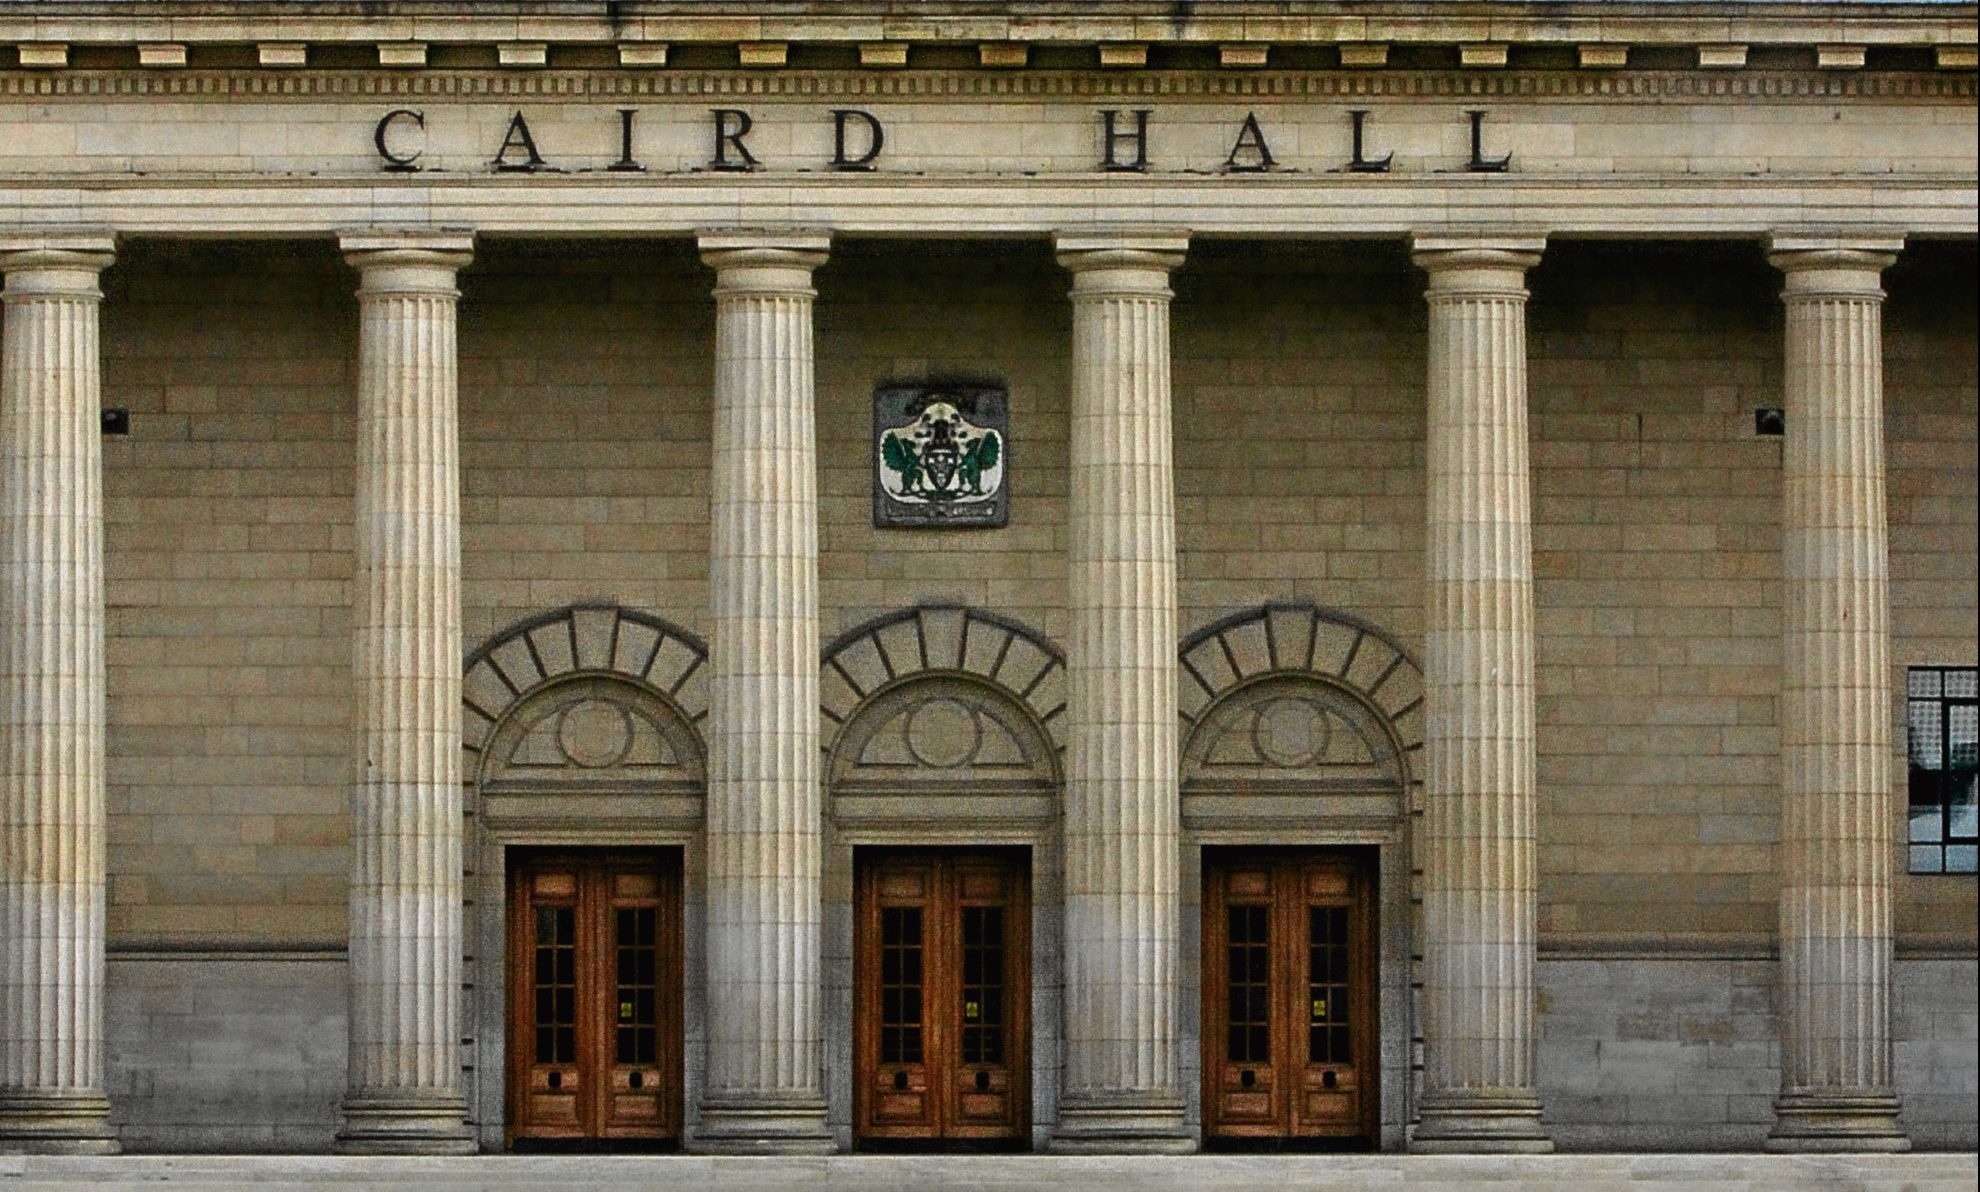 The demonstration was due to be held outside Caird Hall